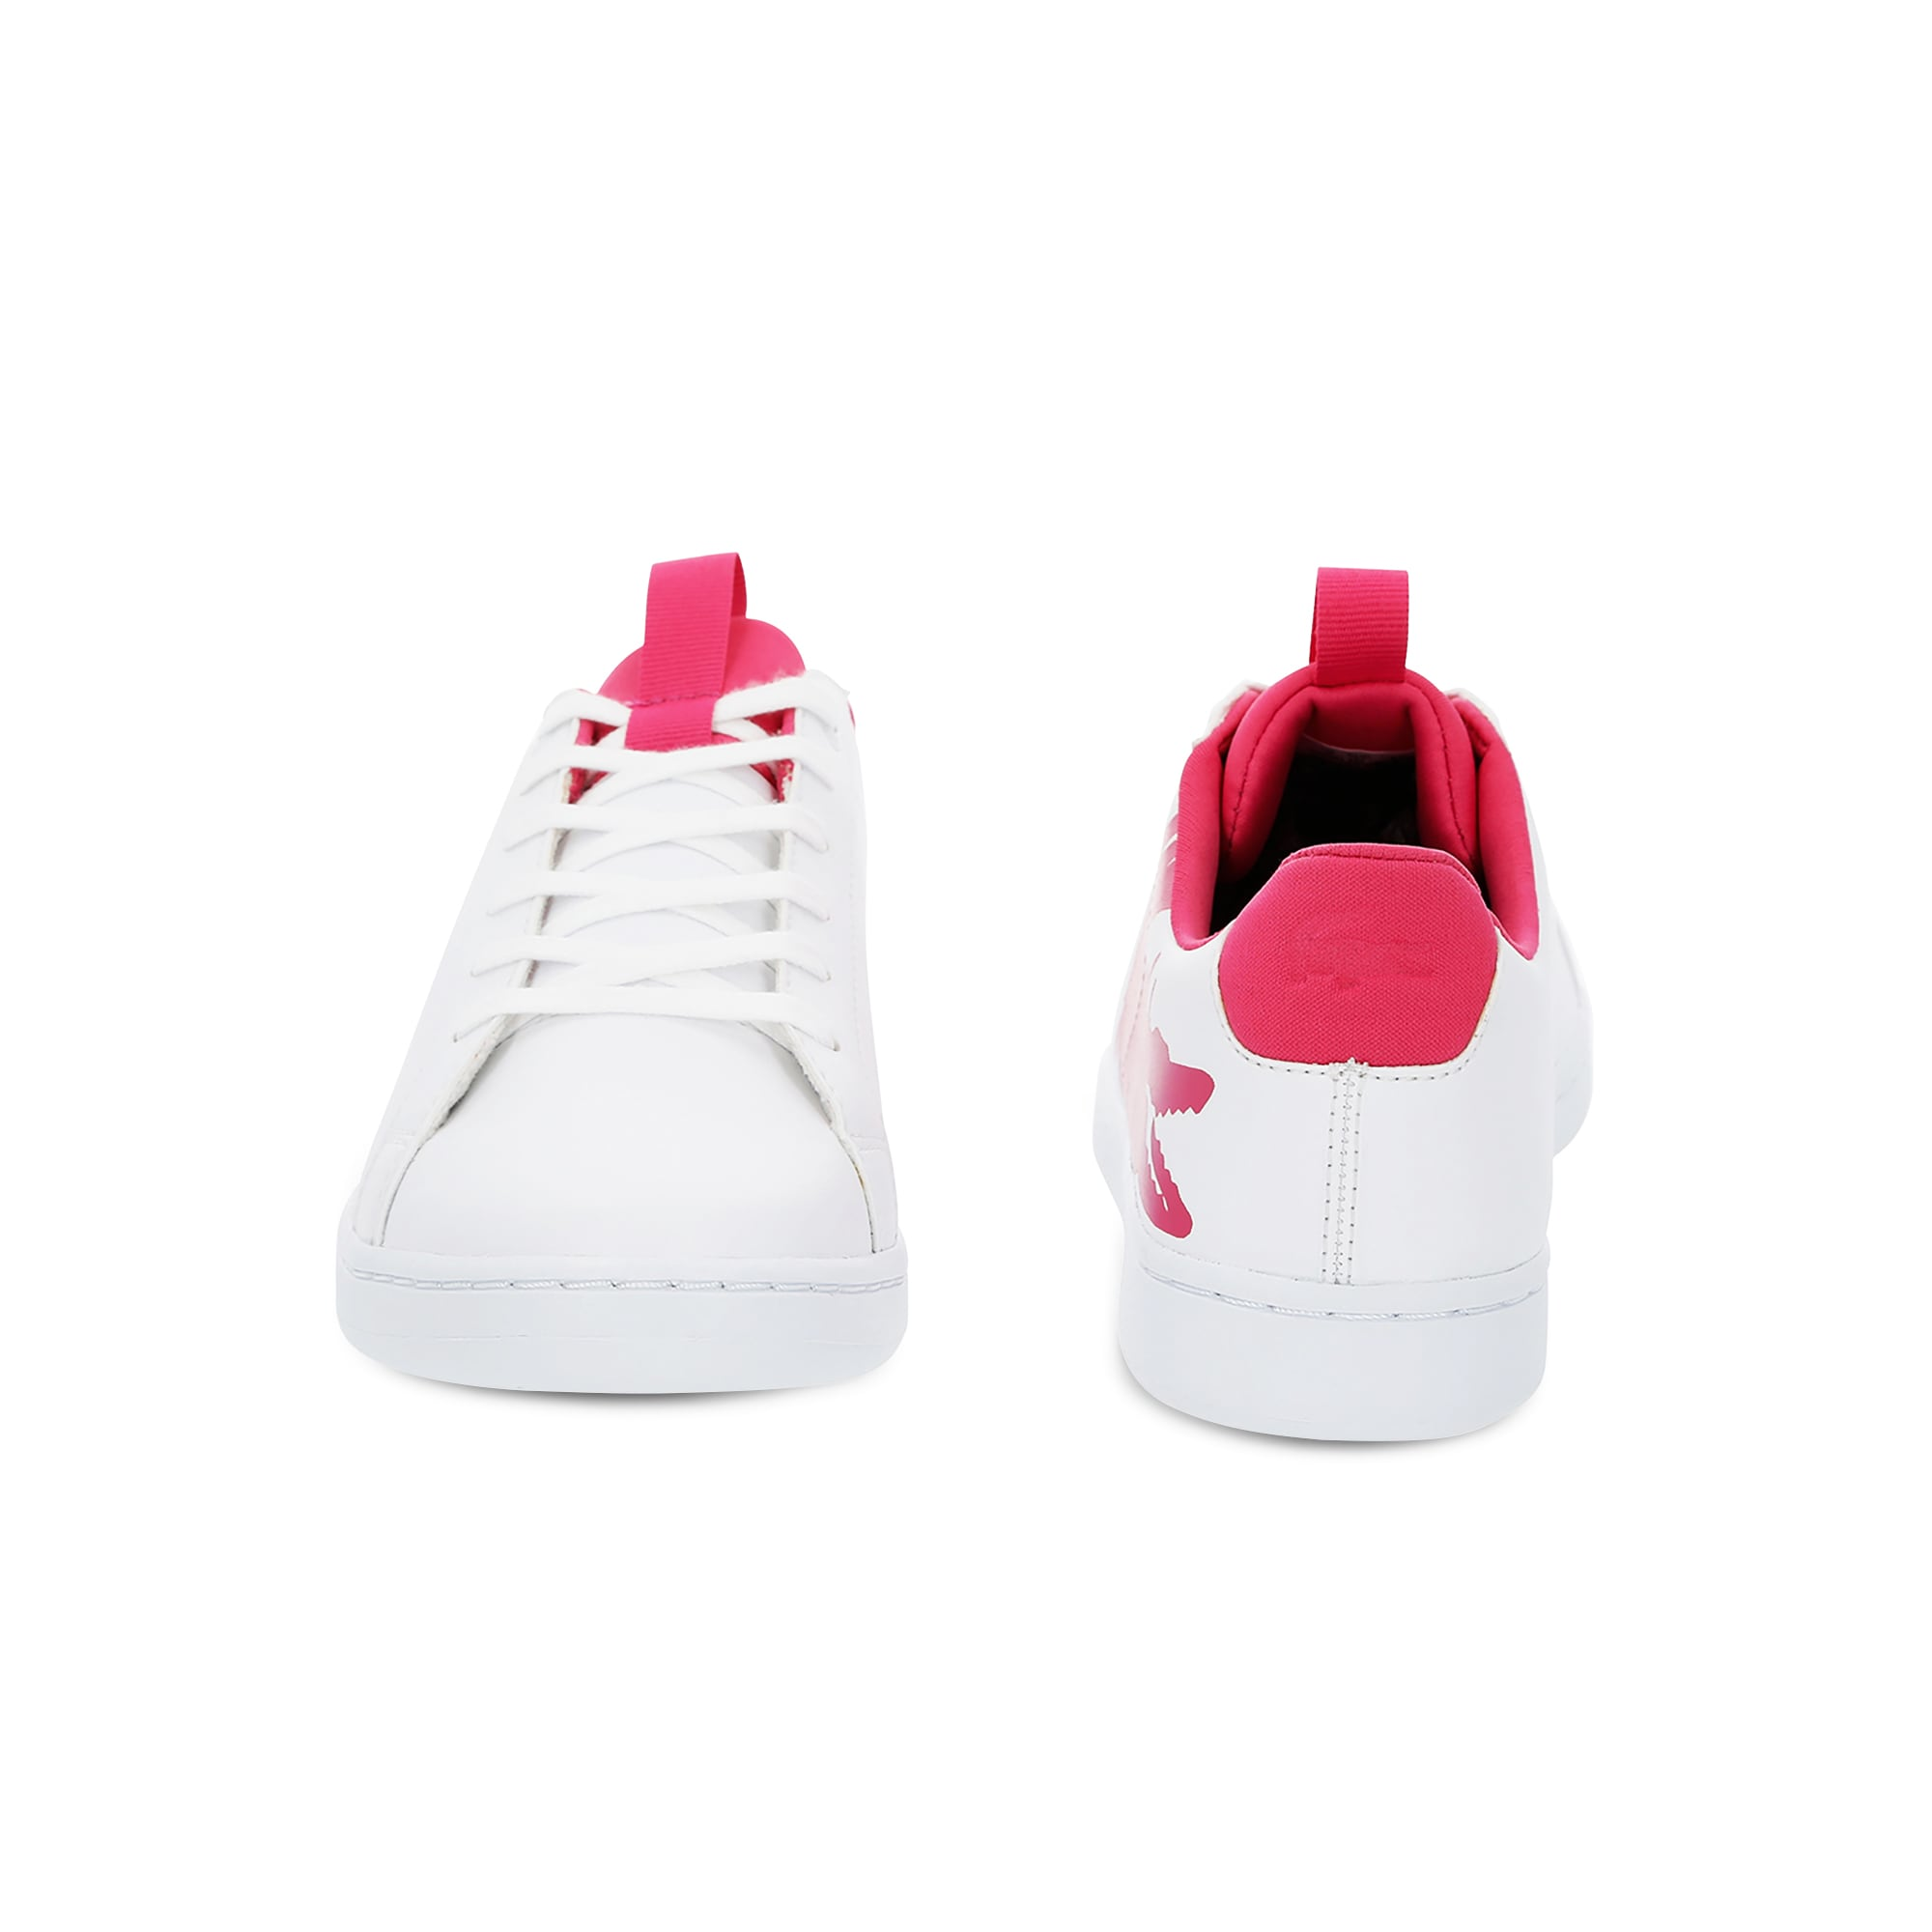 Teen-Sneakers CARNABY EVO aus Synthetik mit Screen-Print